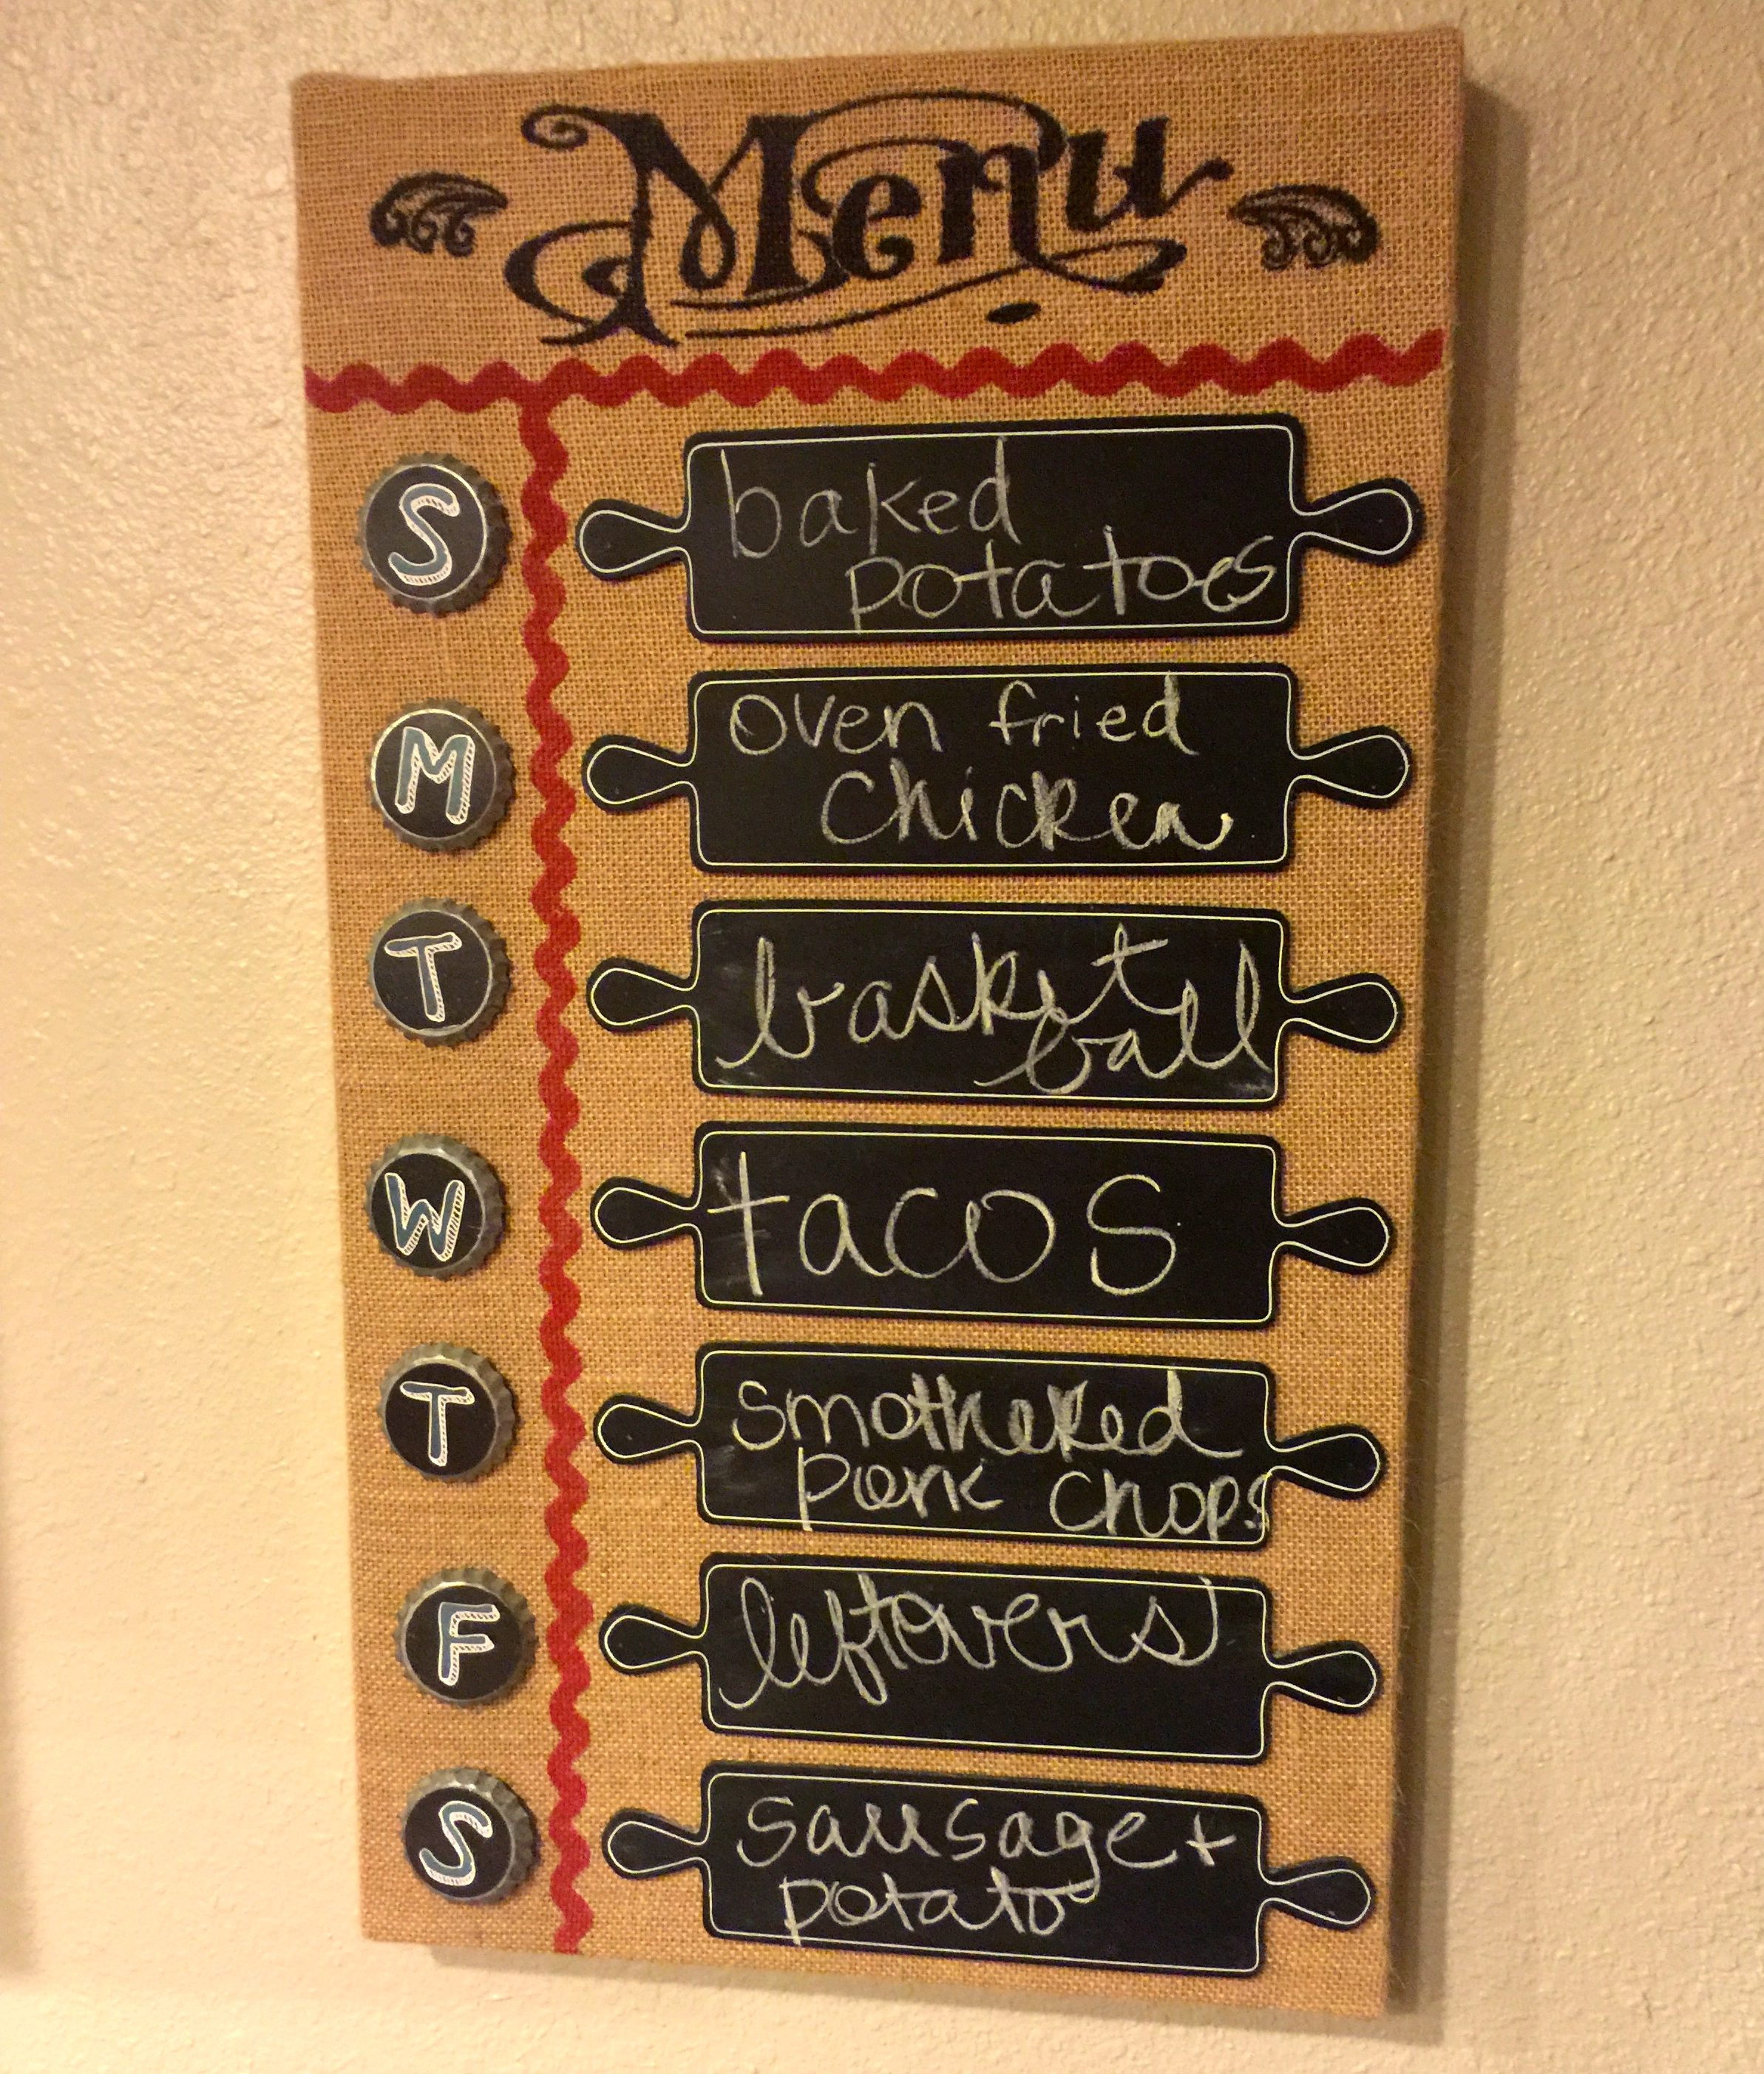 our menu board hangs in our kitchen to help keep me on track.